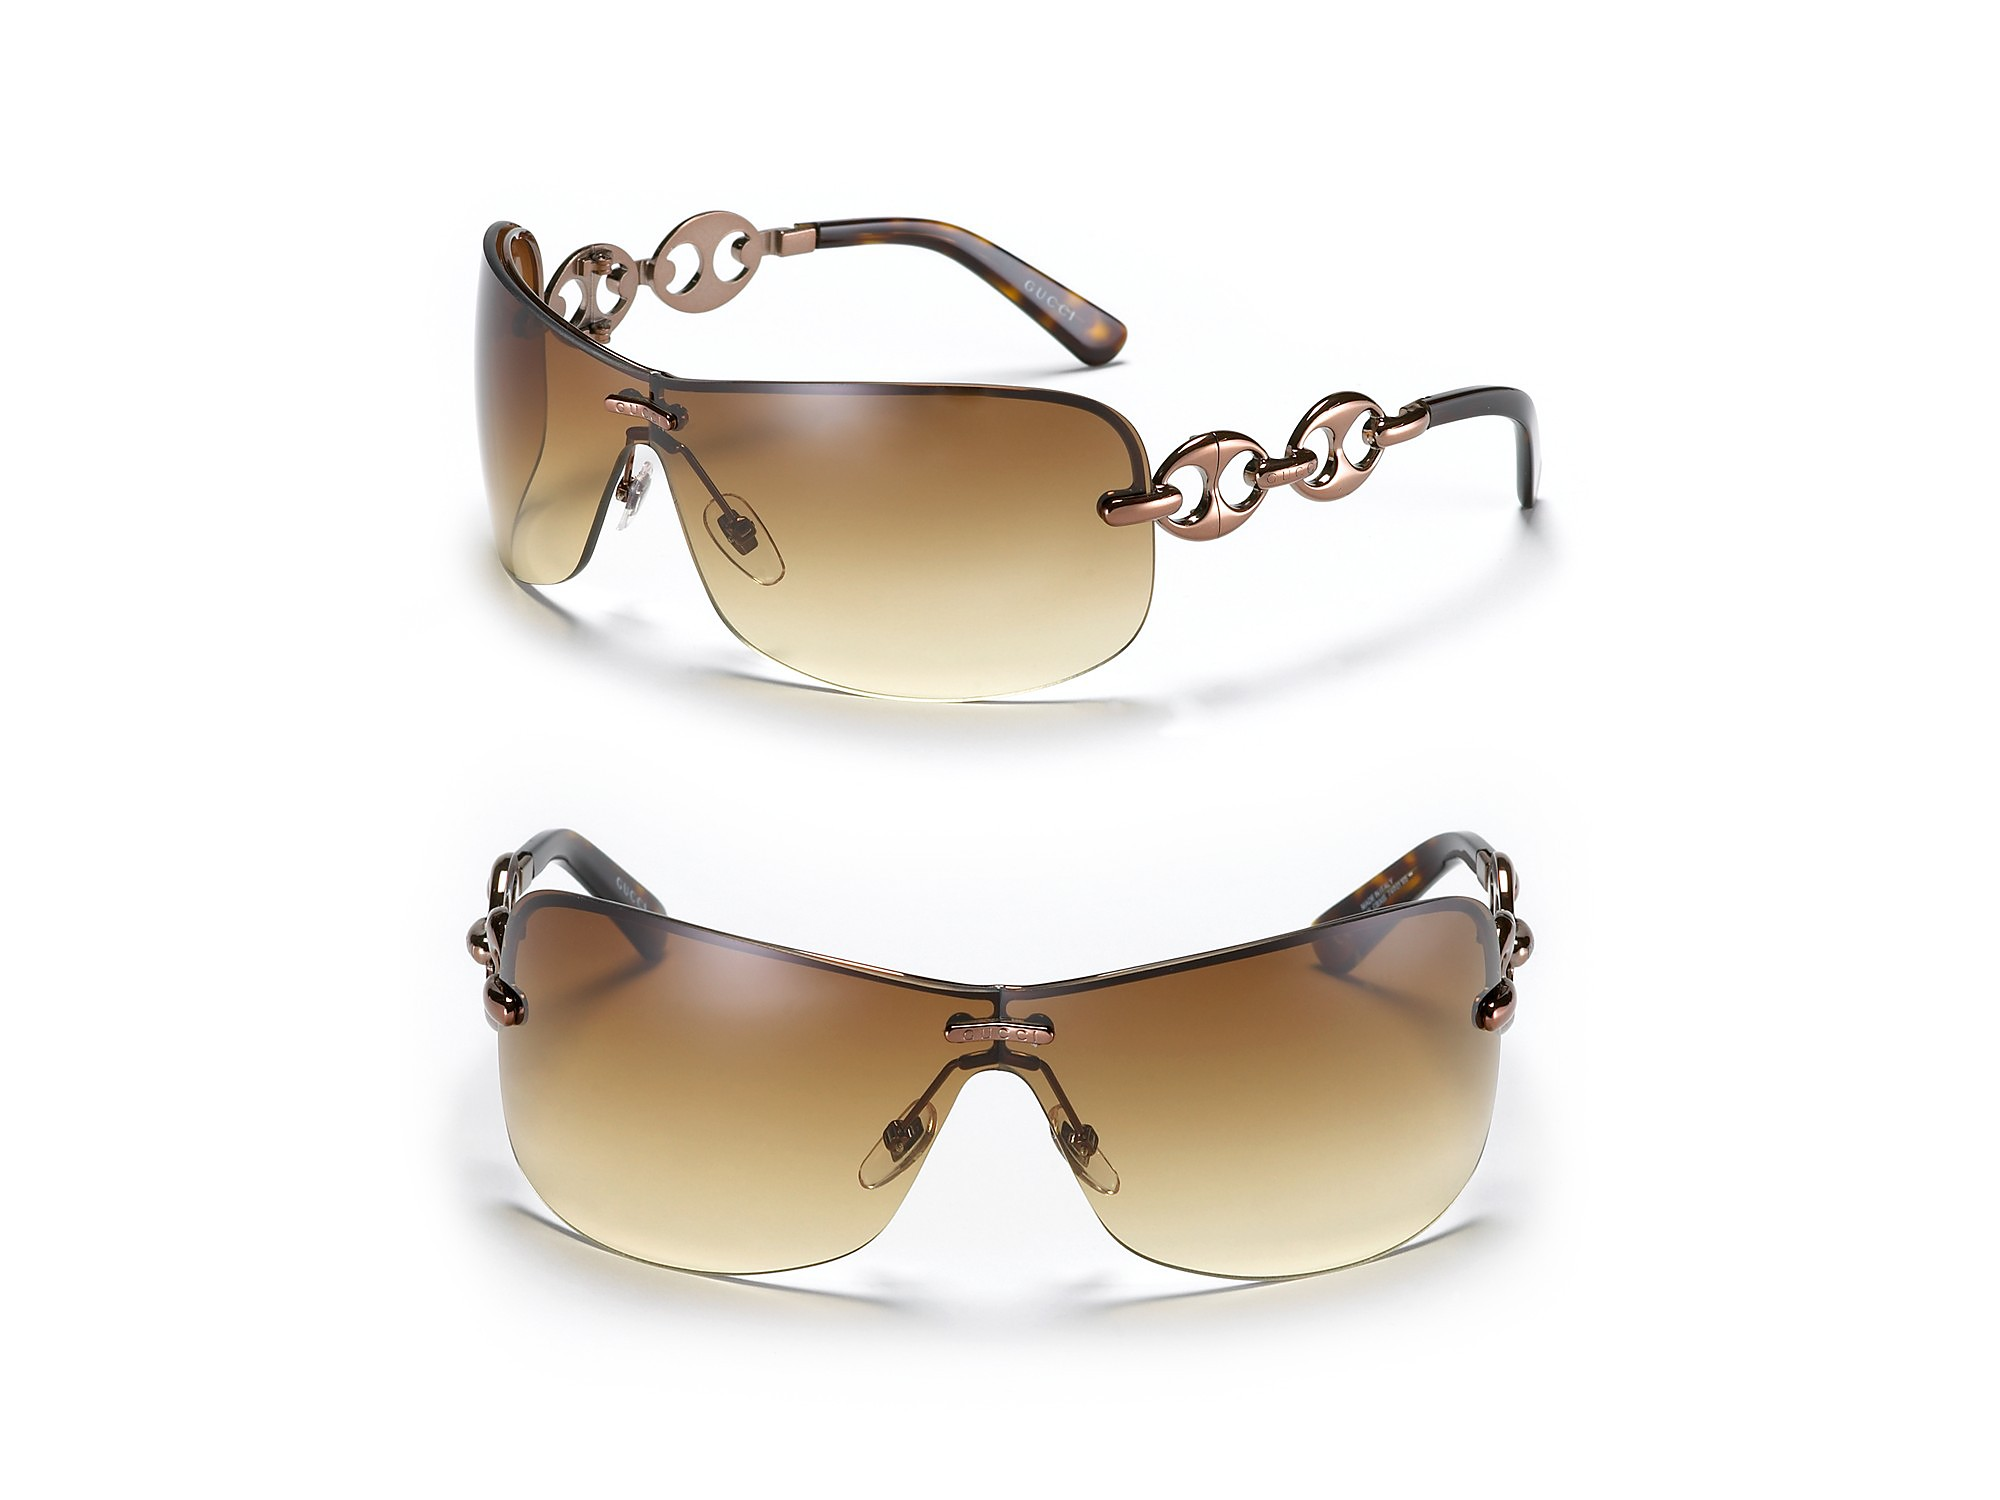 9c23a883aed Lyst - Gucci Rimless Shield Sunglasses with Chain Link Design in Brown